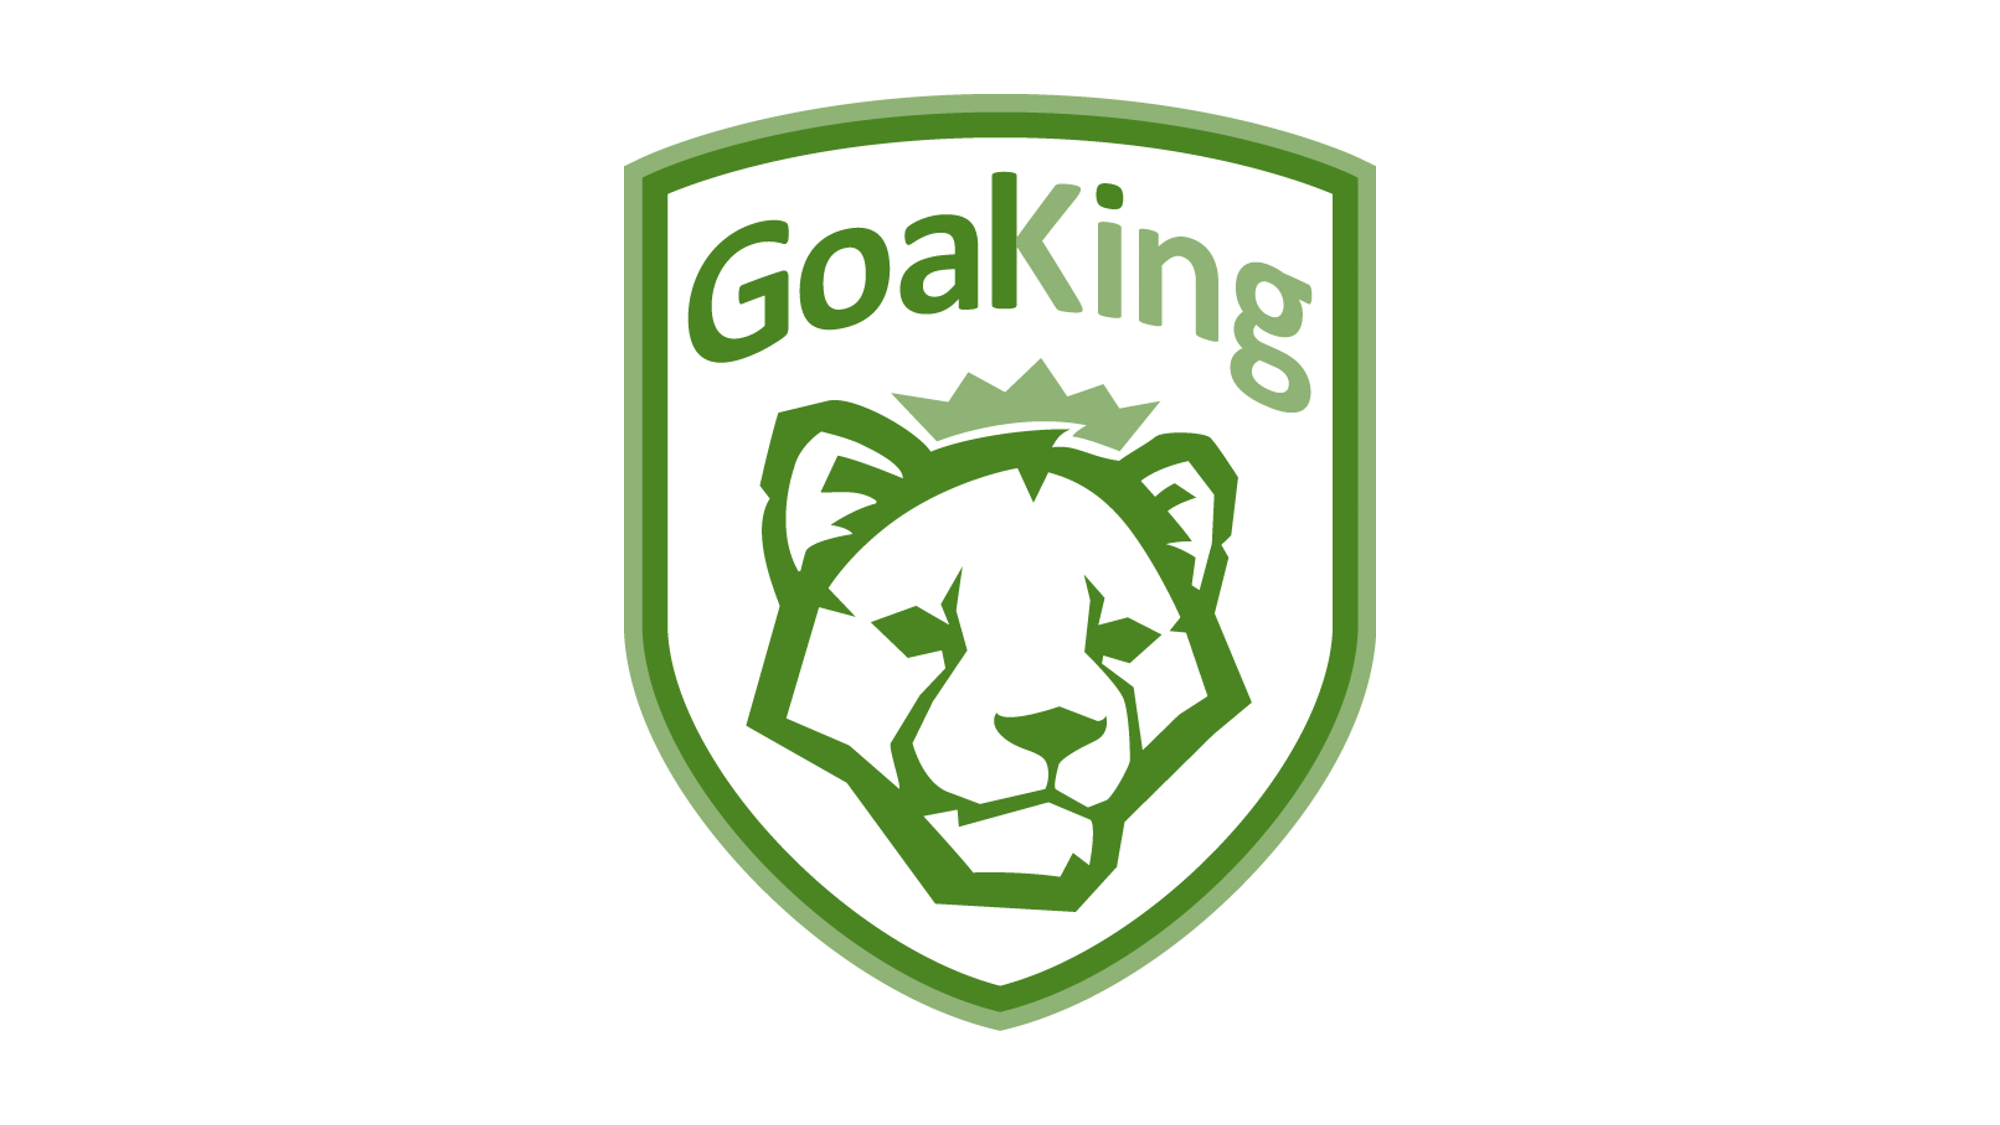 GOALKING Kid Stars - For youth players 7 to 9 years old